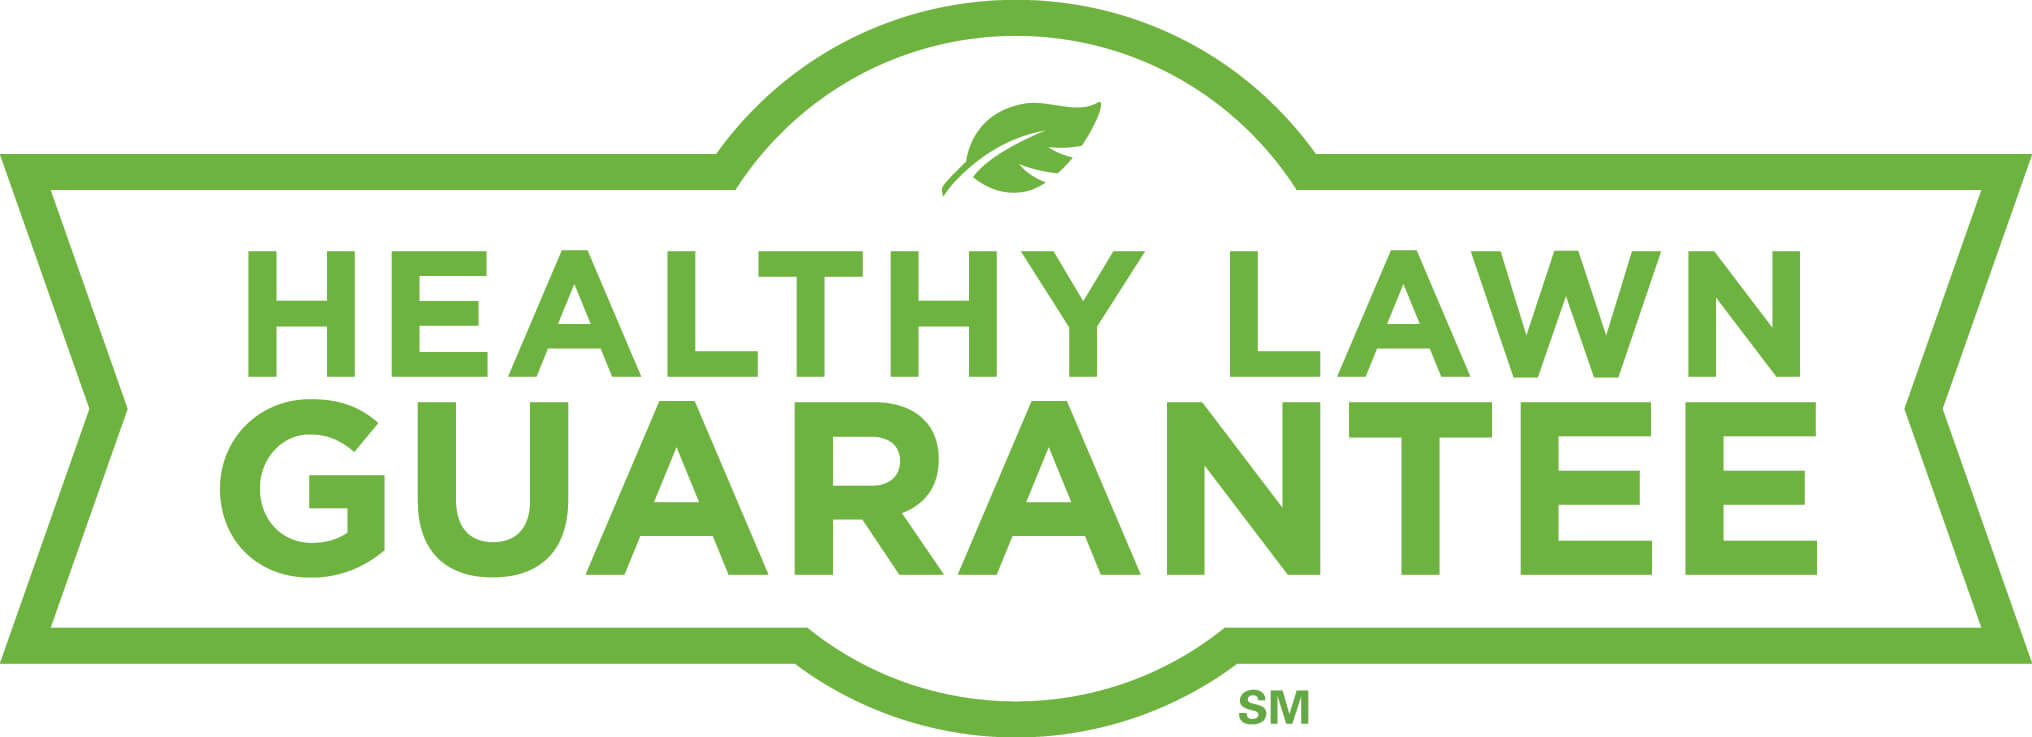 Our Healthy Lawn  Guarantee